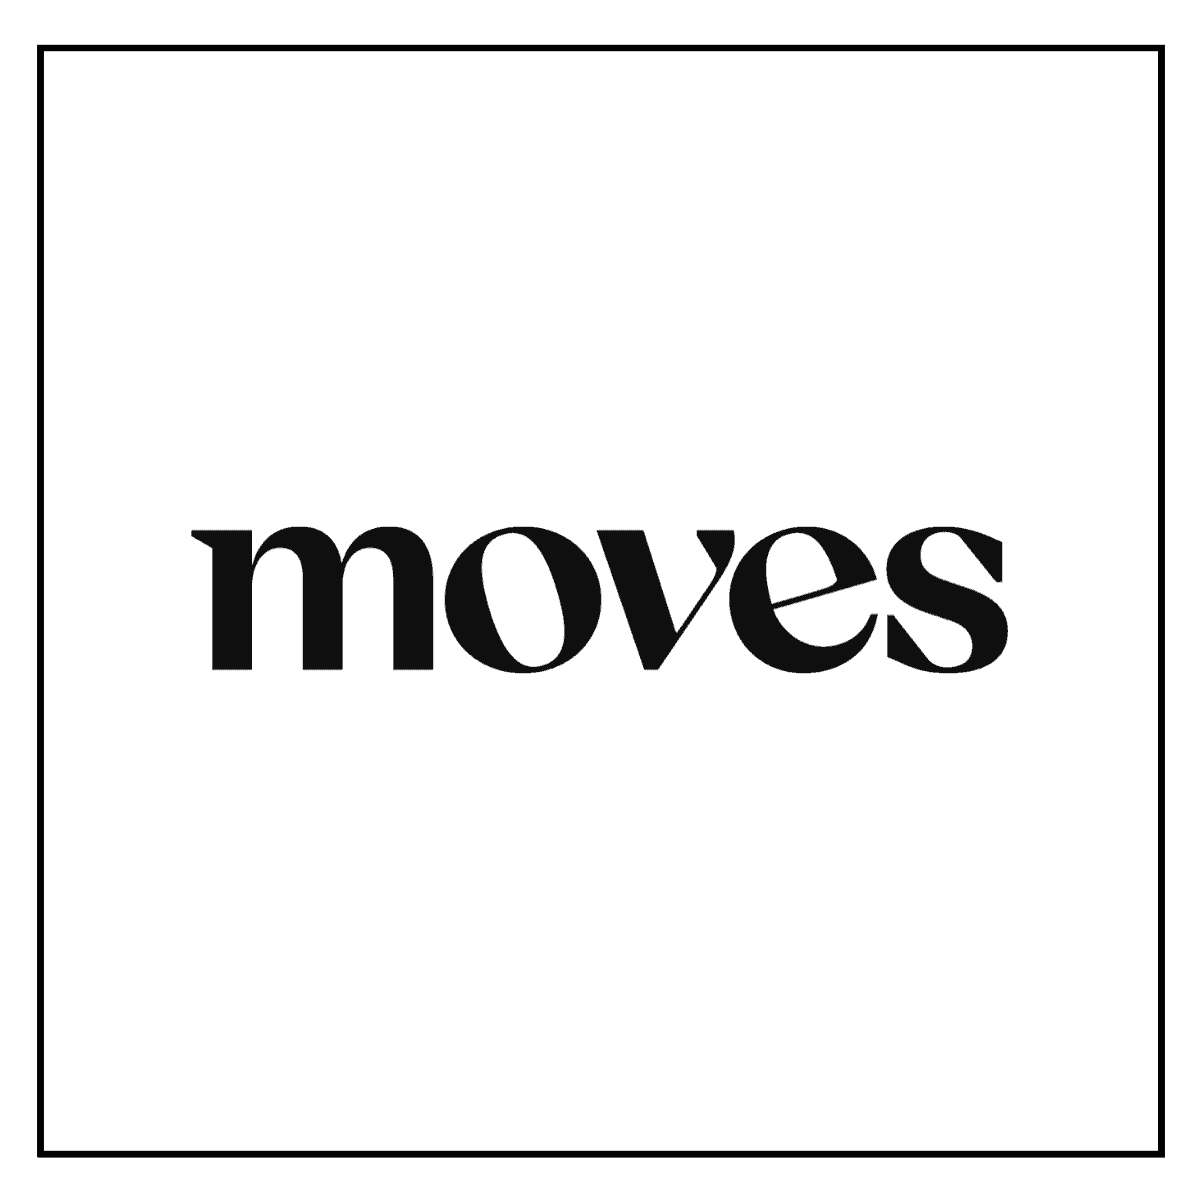 Moves 𑁋 Financial Services For The Independent Worker